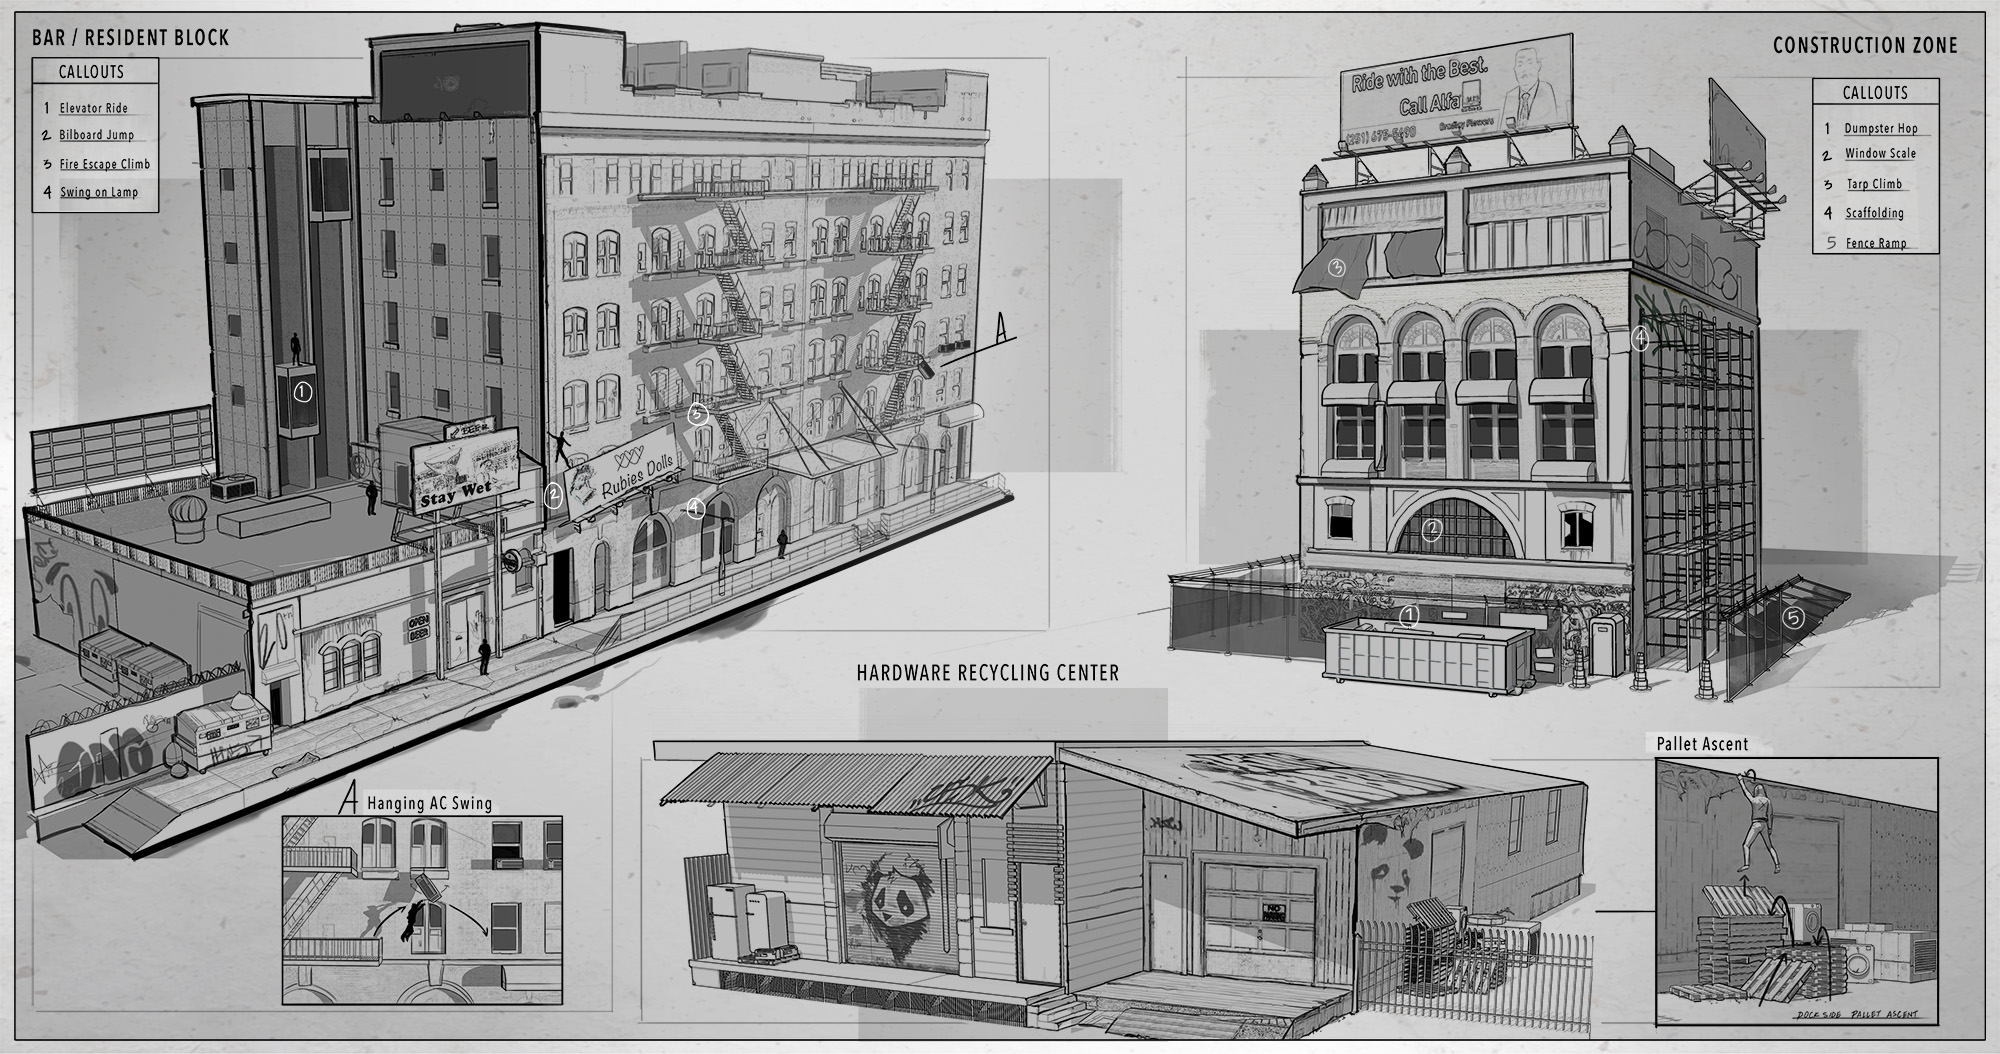 Concept sketches of different buildings in shot for Neo-noir alleyway environment.  Sketchup | Photo-overlay | Drawover